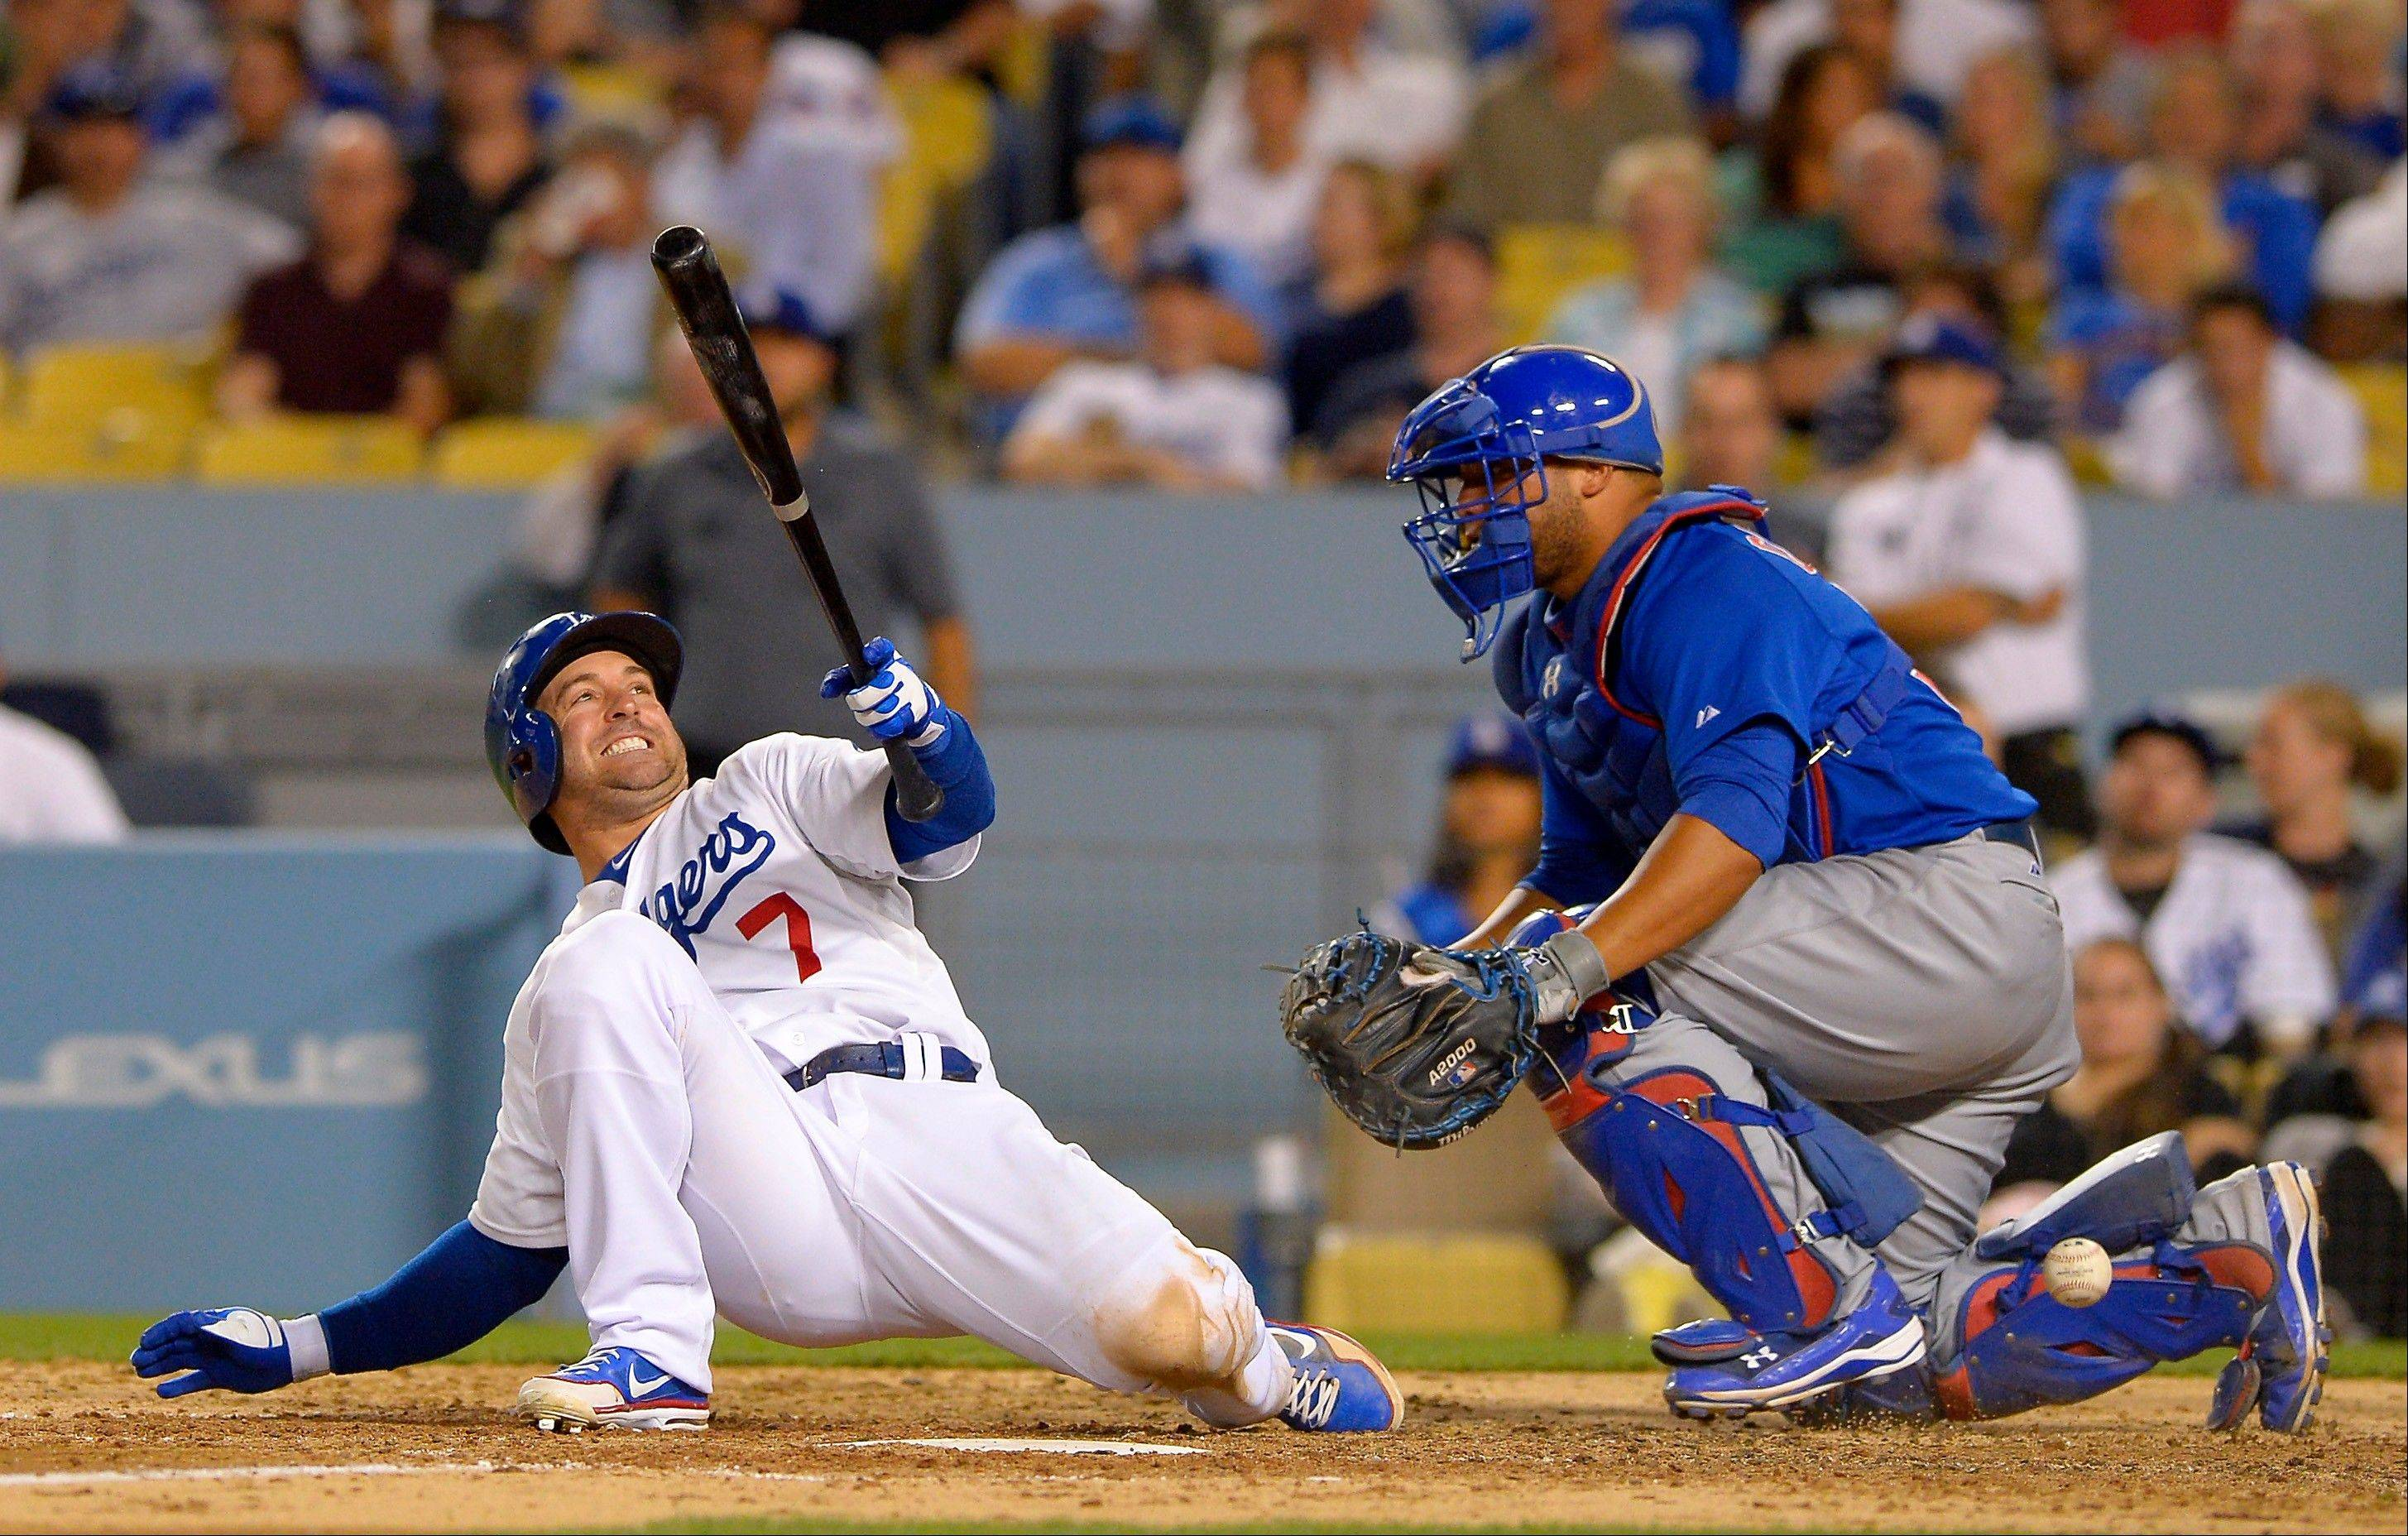 Cubs catcher Welington Castillo watches the Dodgers' Nick Punto hit the deck to avoid being struck by a pitch during the sixth inning Monday night in Los Angeles.